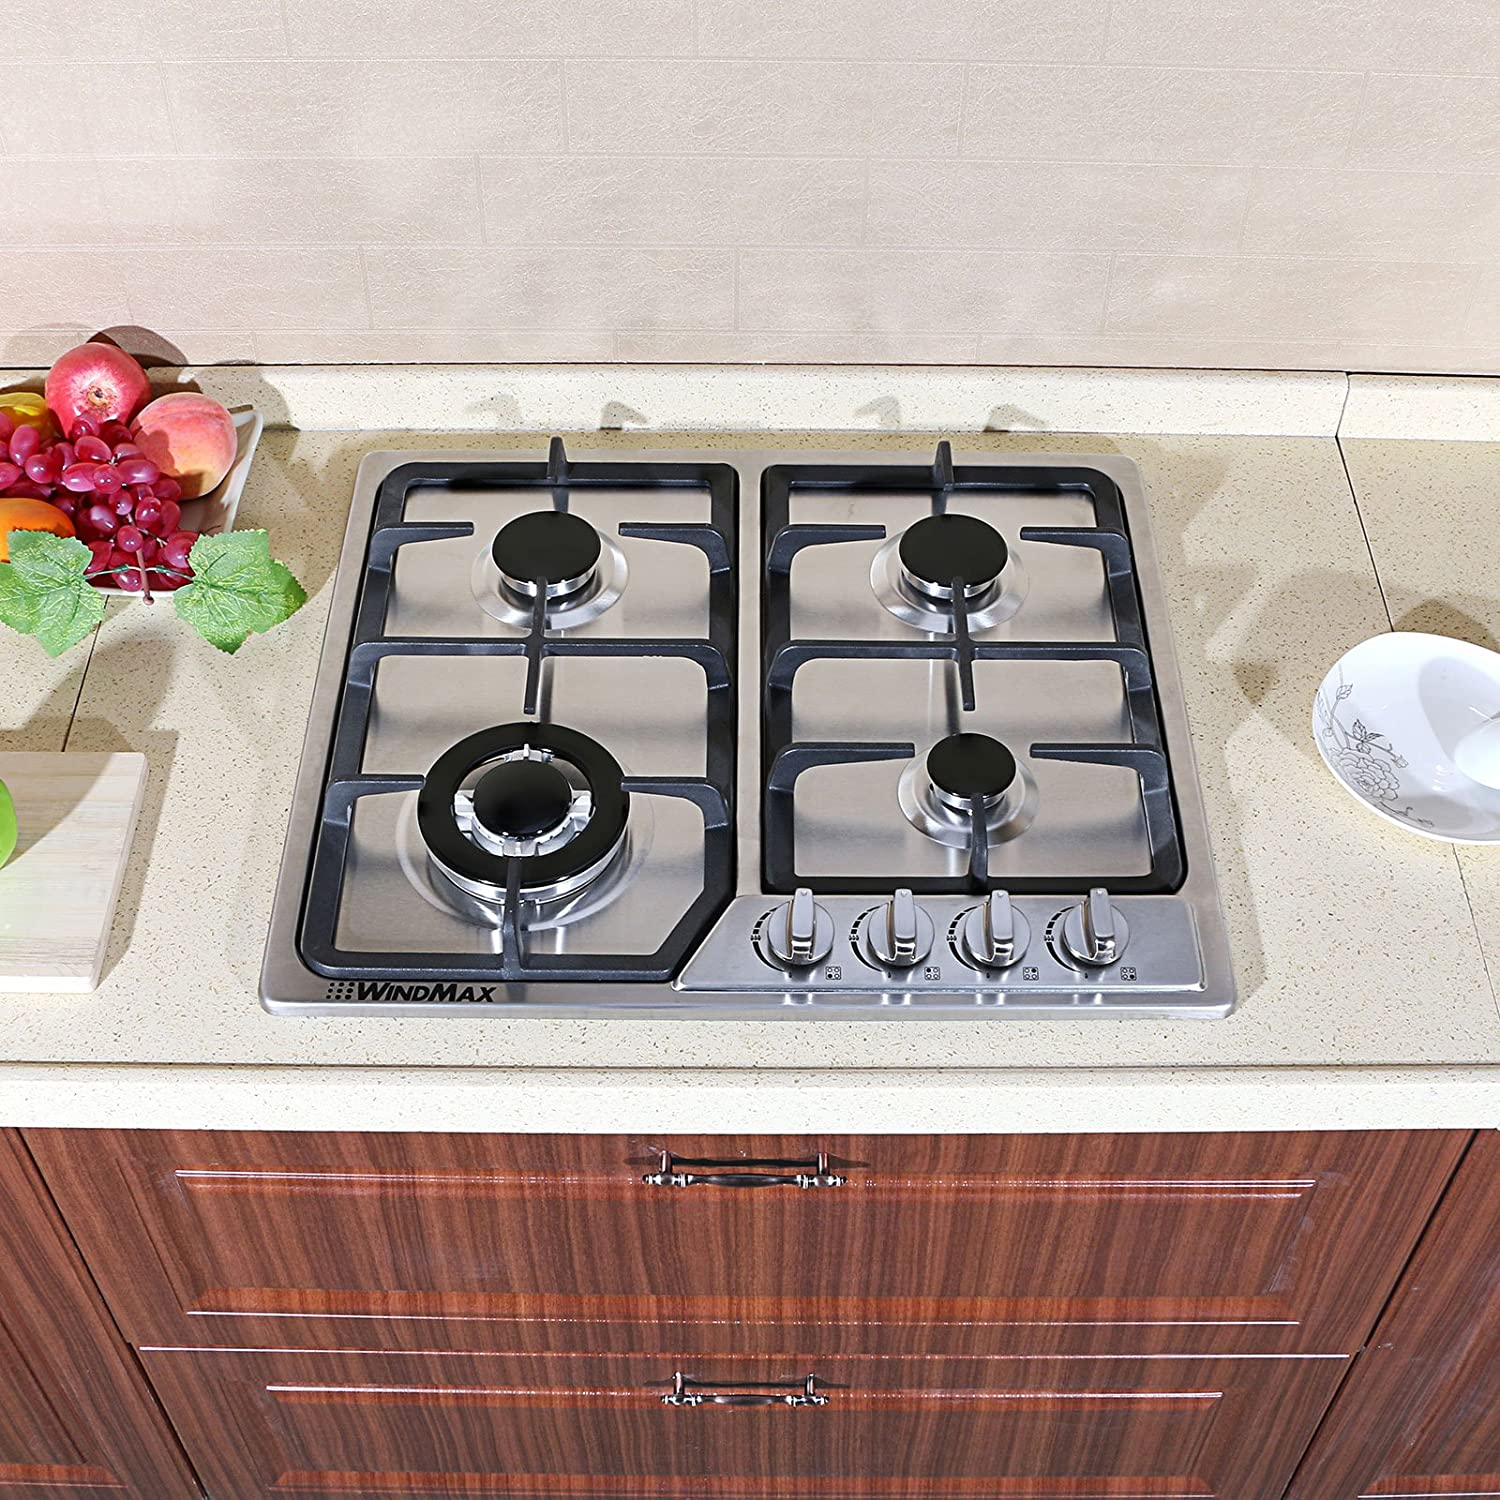 Amazon Brand New 23 Inch Stainless Steel Built In Kitchen 4 Burner Stove Gas Hob Cooktop Cooker Appliances